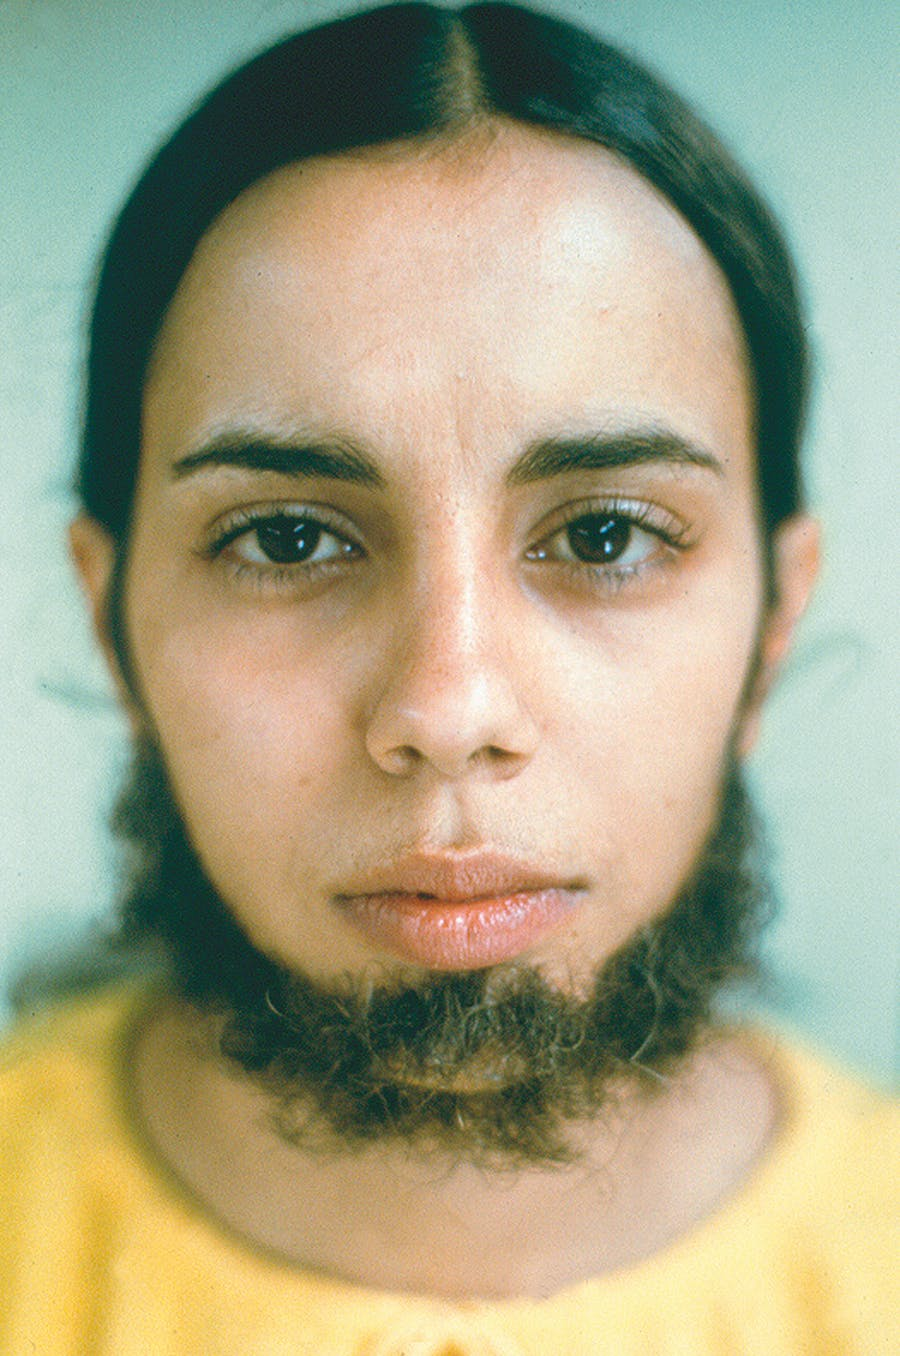 Ana Mendieta, Untitled (Facial Hair Transplants), 1972, image © The Estaste of Ana Mendieta Collection, LLC, Gallery Lelong & Co